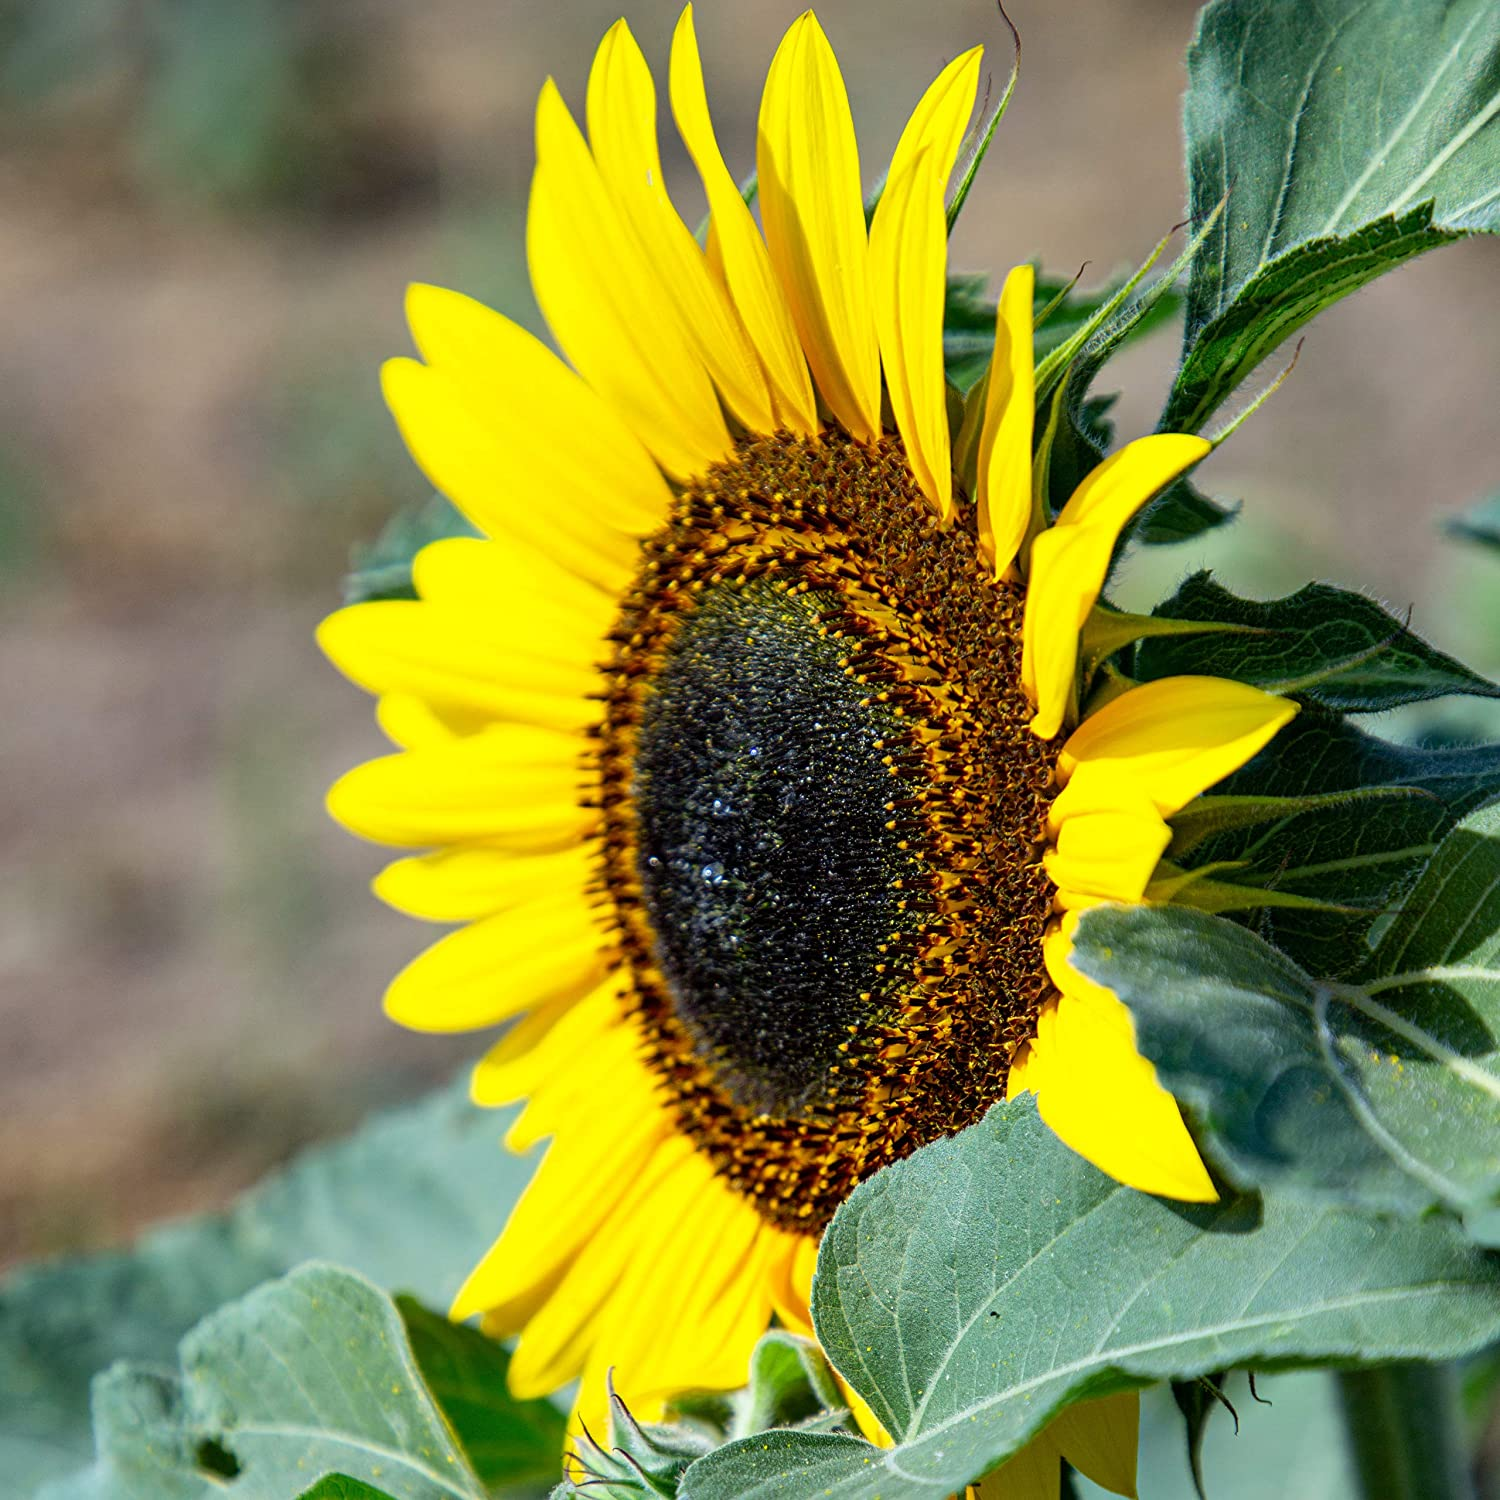 Flower Seeds for Gardening Flowers 30 Evening Sun Flower Plants Large Sunflower Seeds for Planting Wild Flower Seeds by OwnGrown Grow Your Own Sunflower: Premium Giant Sunflower Seeds to Grow ca